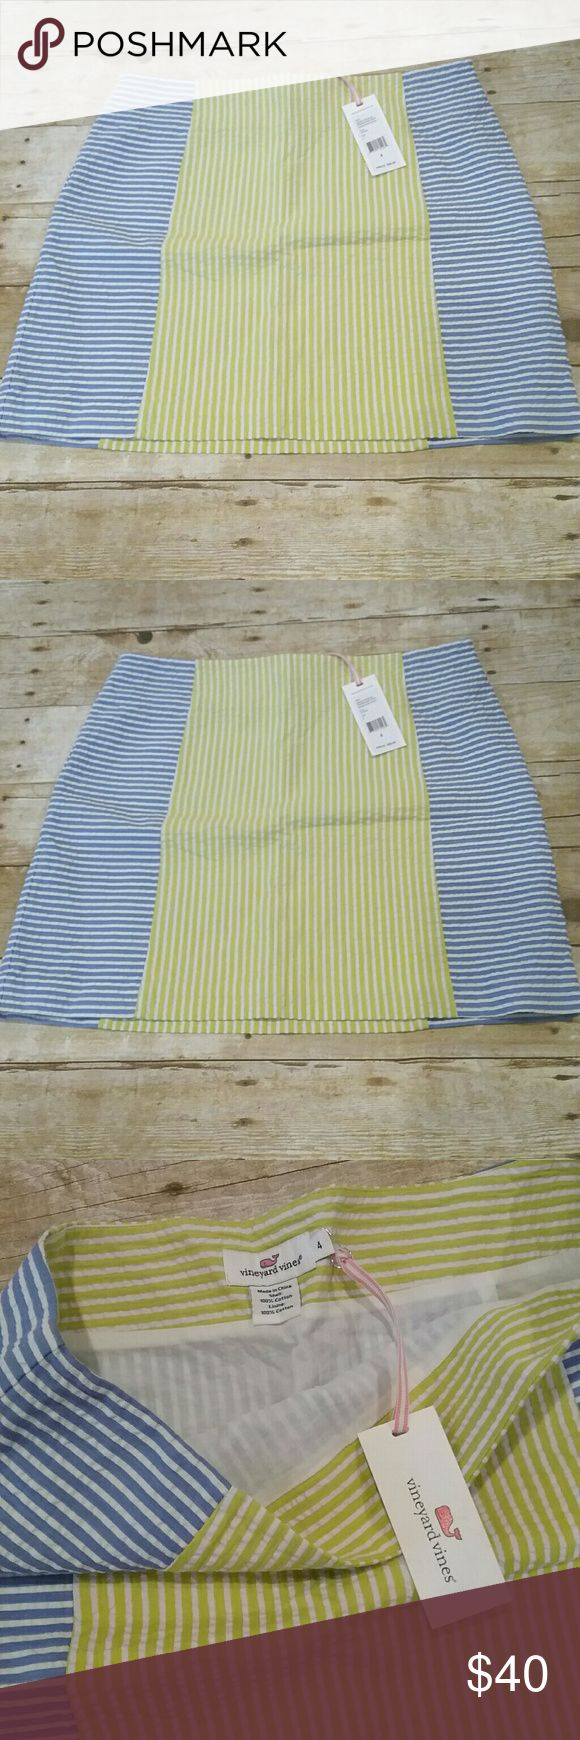 VINEYARD VINES SEERSUCKER SKIRT NWT very cute yellow and blue seersucker skirt - FLAT LAY MEASUREMENT 16 inch waist - 16 inches in length - side zipper - it is yellow and blue...camera not picking up the true yellow color Skirts